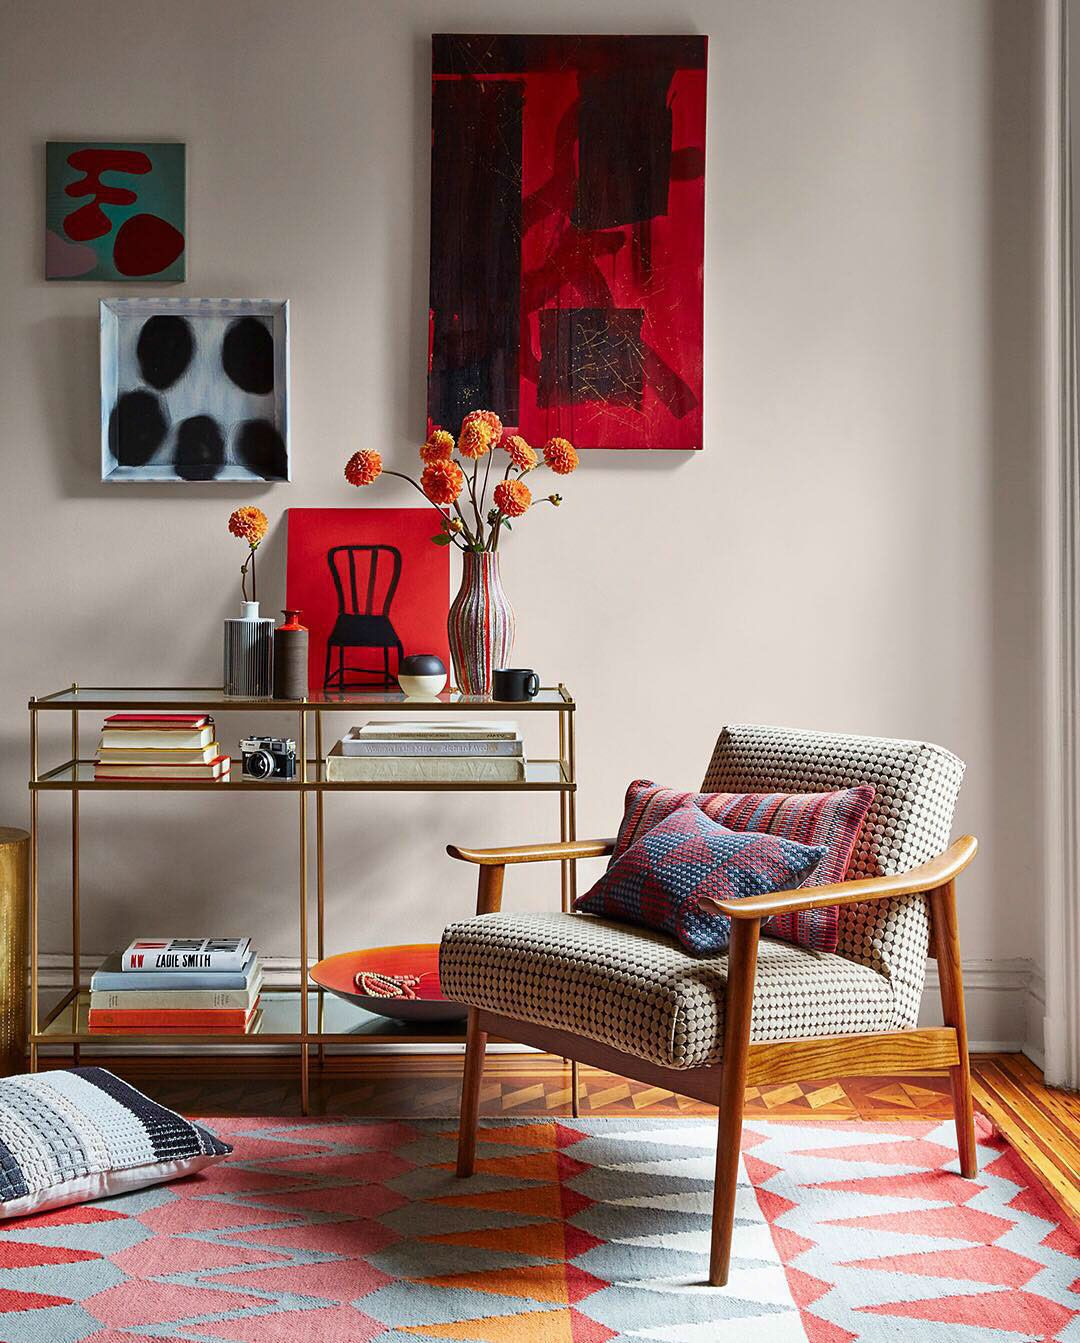 Decorate your home in bold color modern patterns intricate woven textiles designed by margo selby for west elm add bright pops of color with pillows